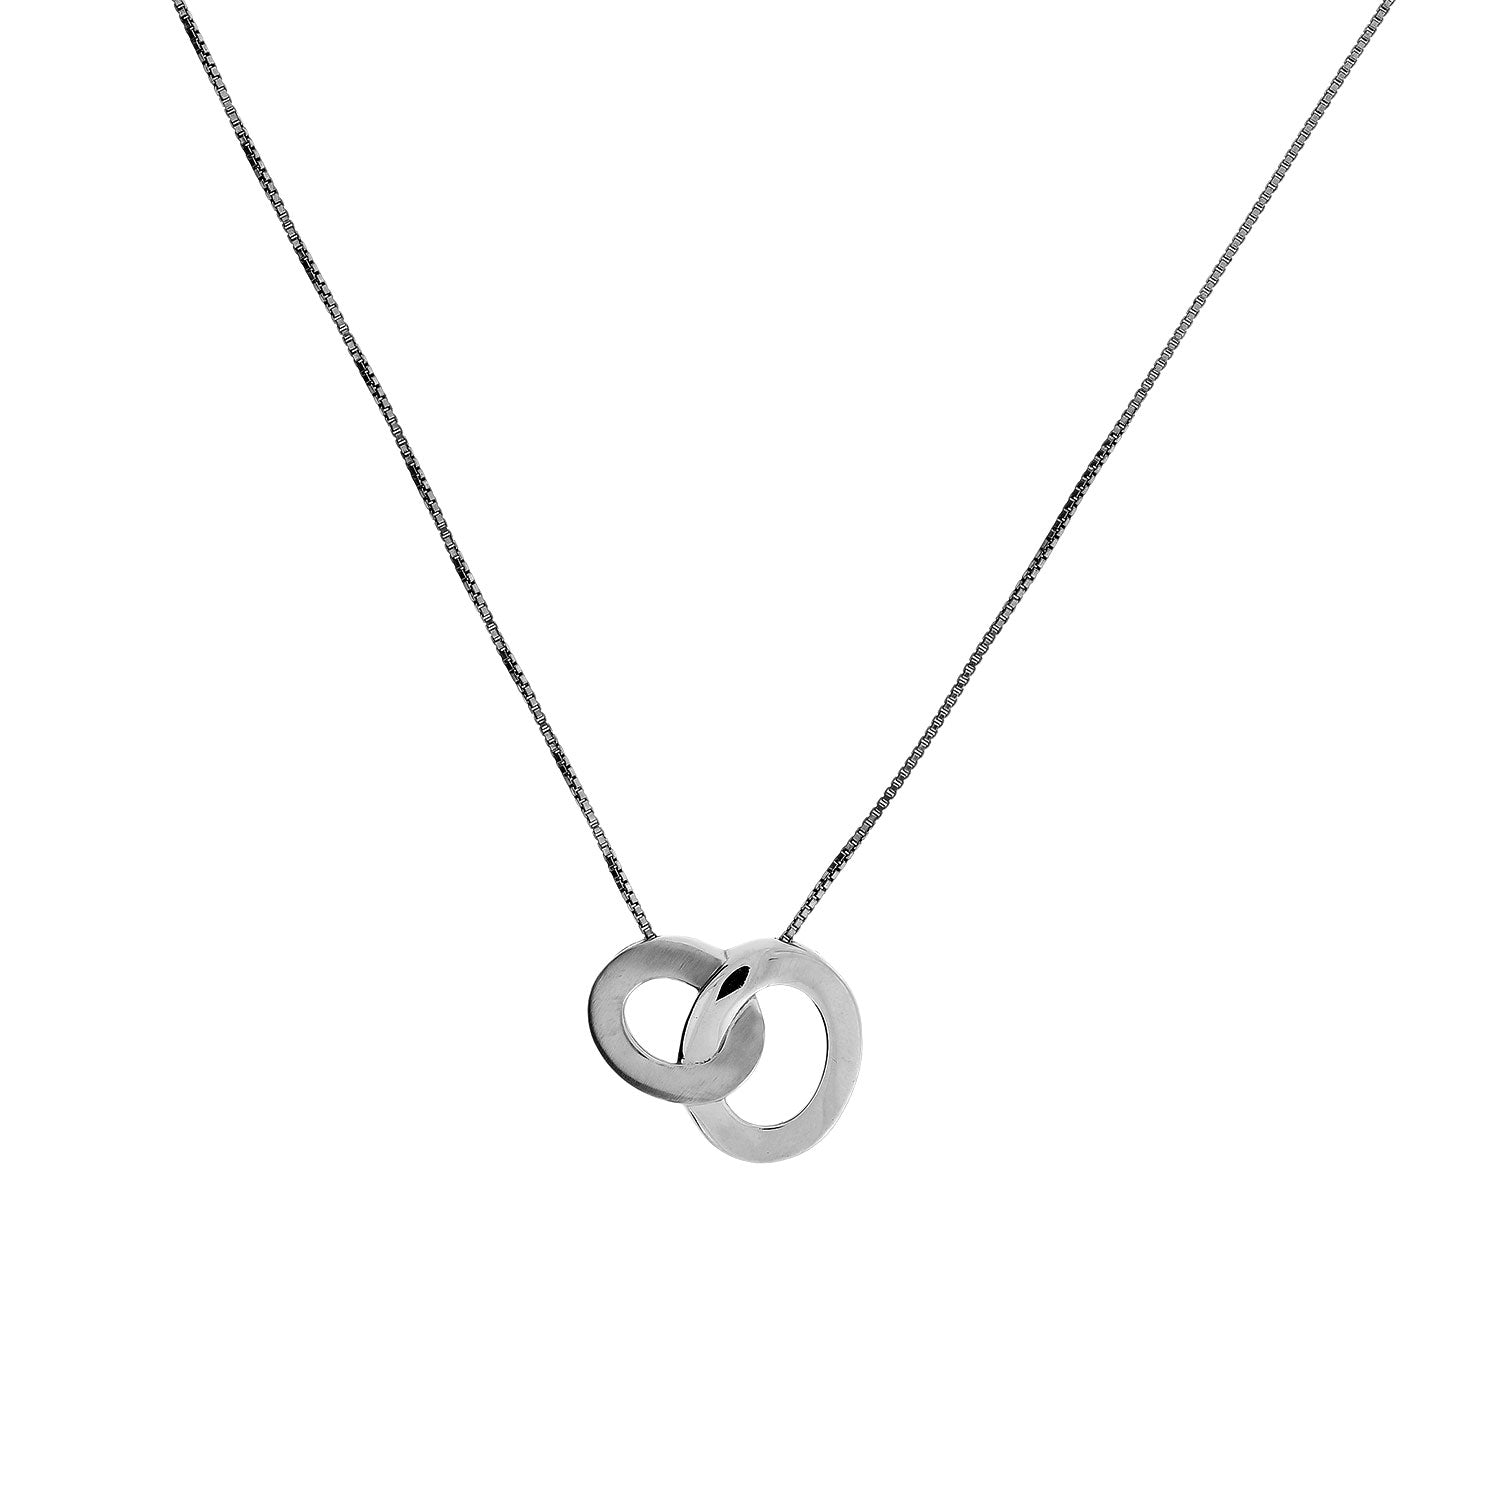 Silver Interlocking Circles Pendant